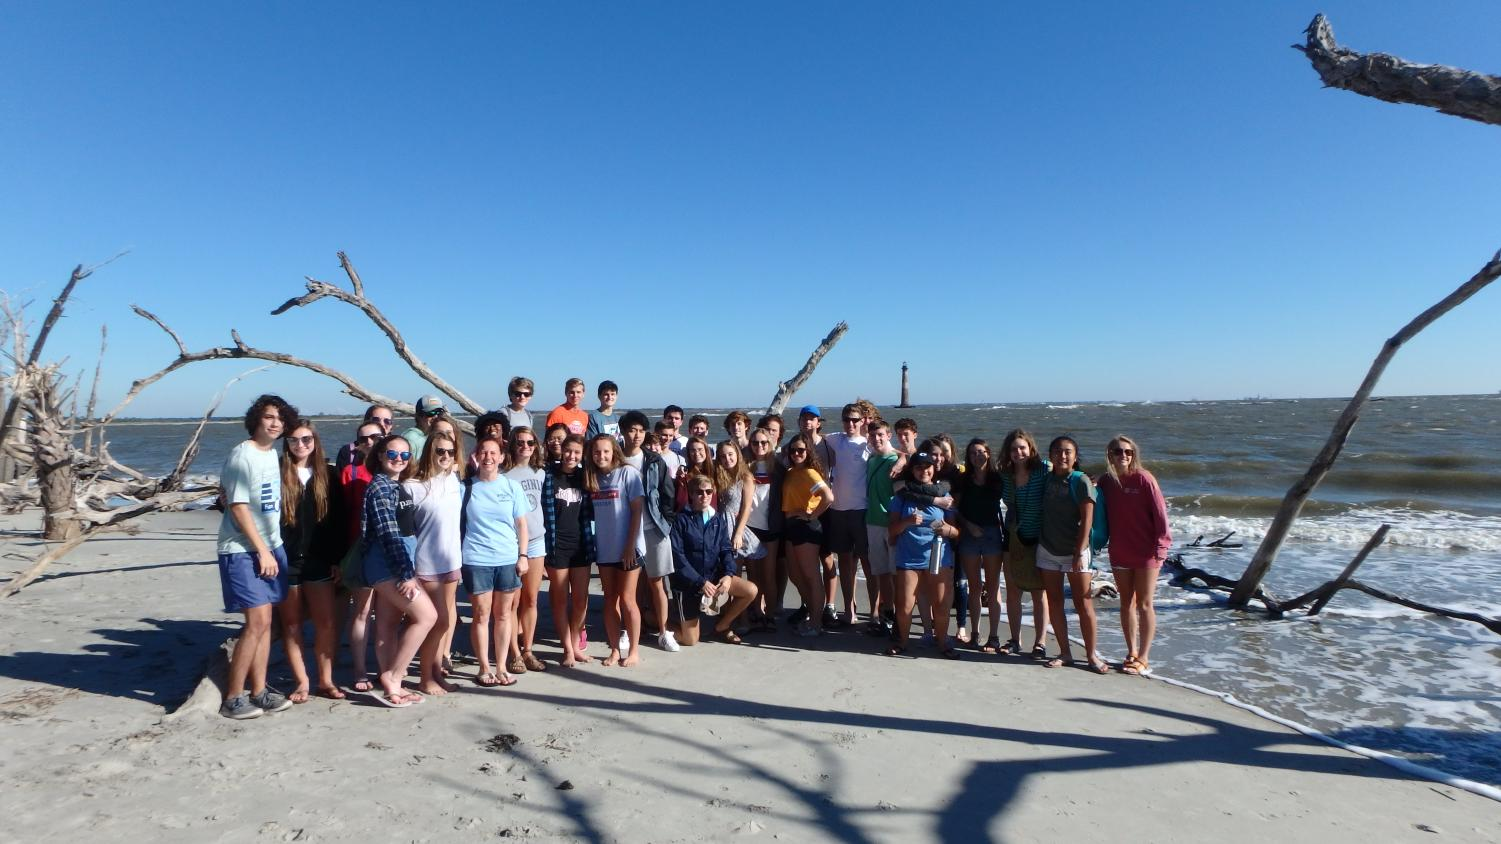 The seniors in Marine Biology took a trip to Folly Beach last Friday!